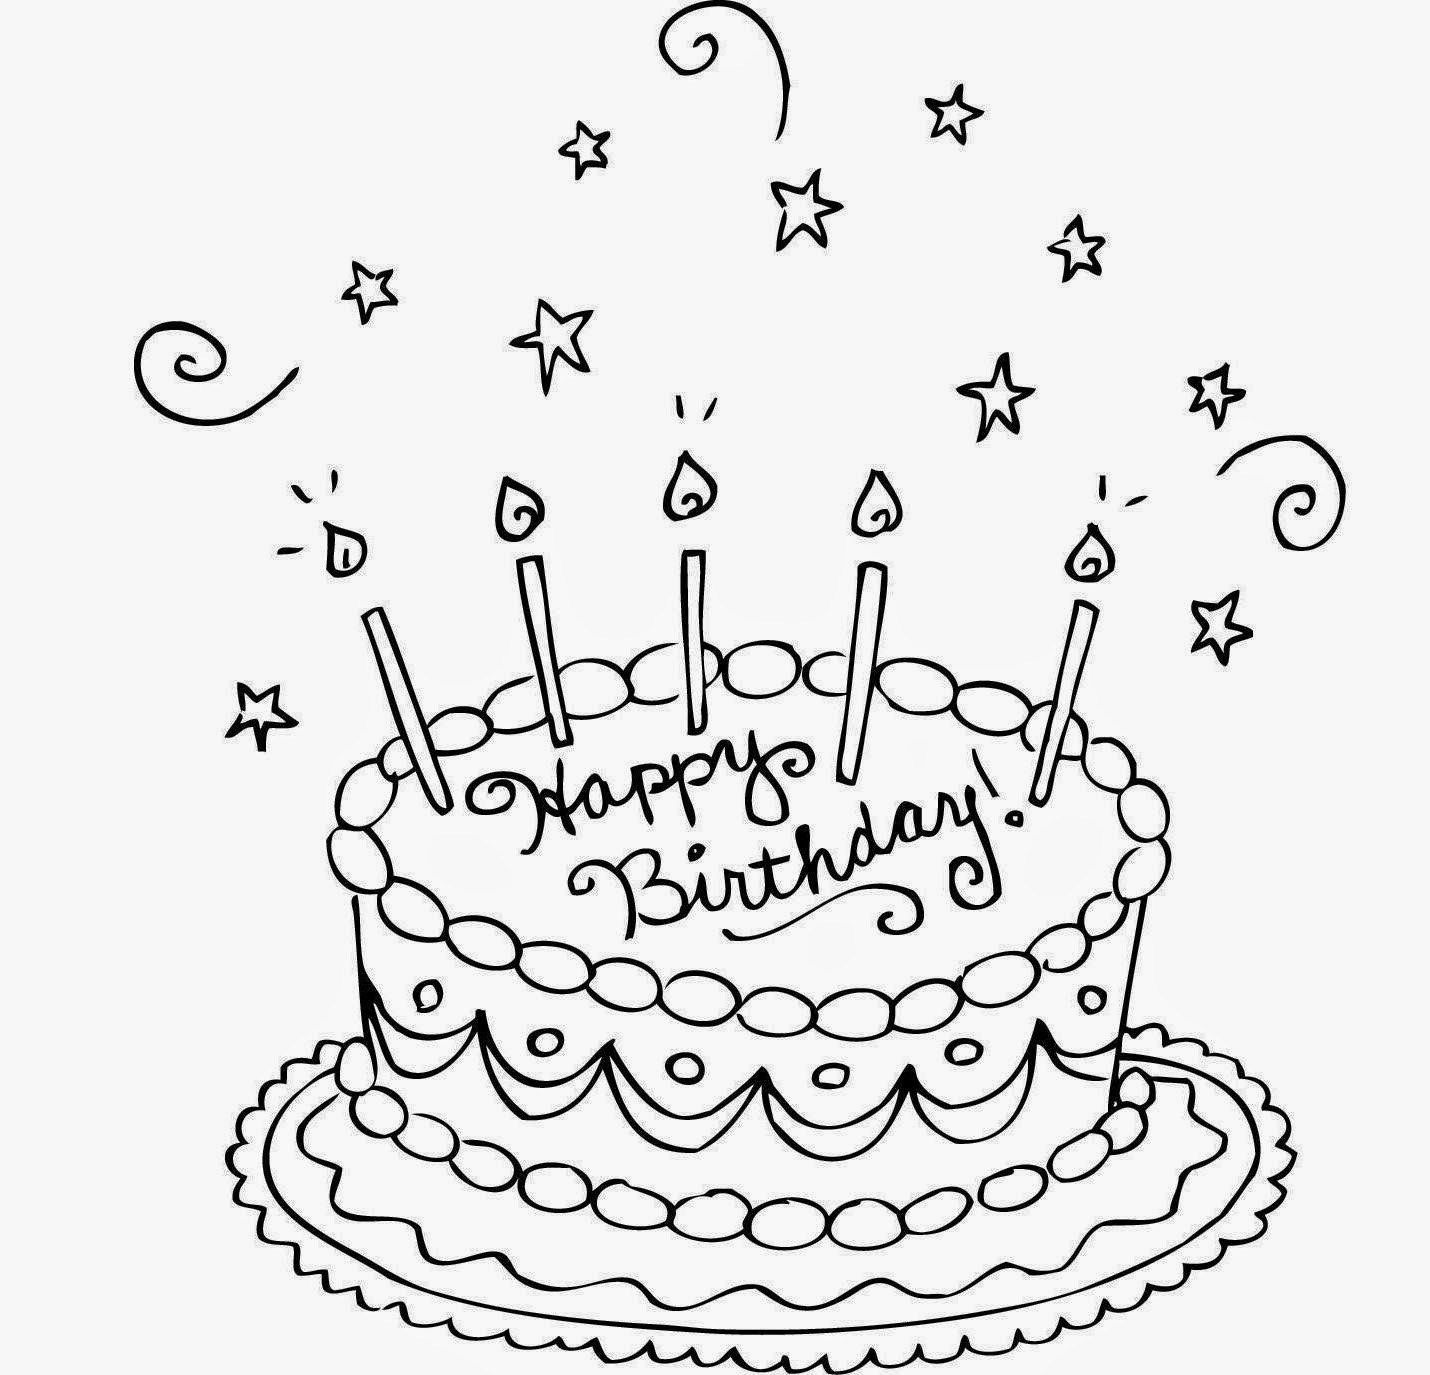 Remarkable 32 Awesome Image Of Birthday Cake Drawing Cake Drawing Birthday Cards Printable Benkemecafe Filternl